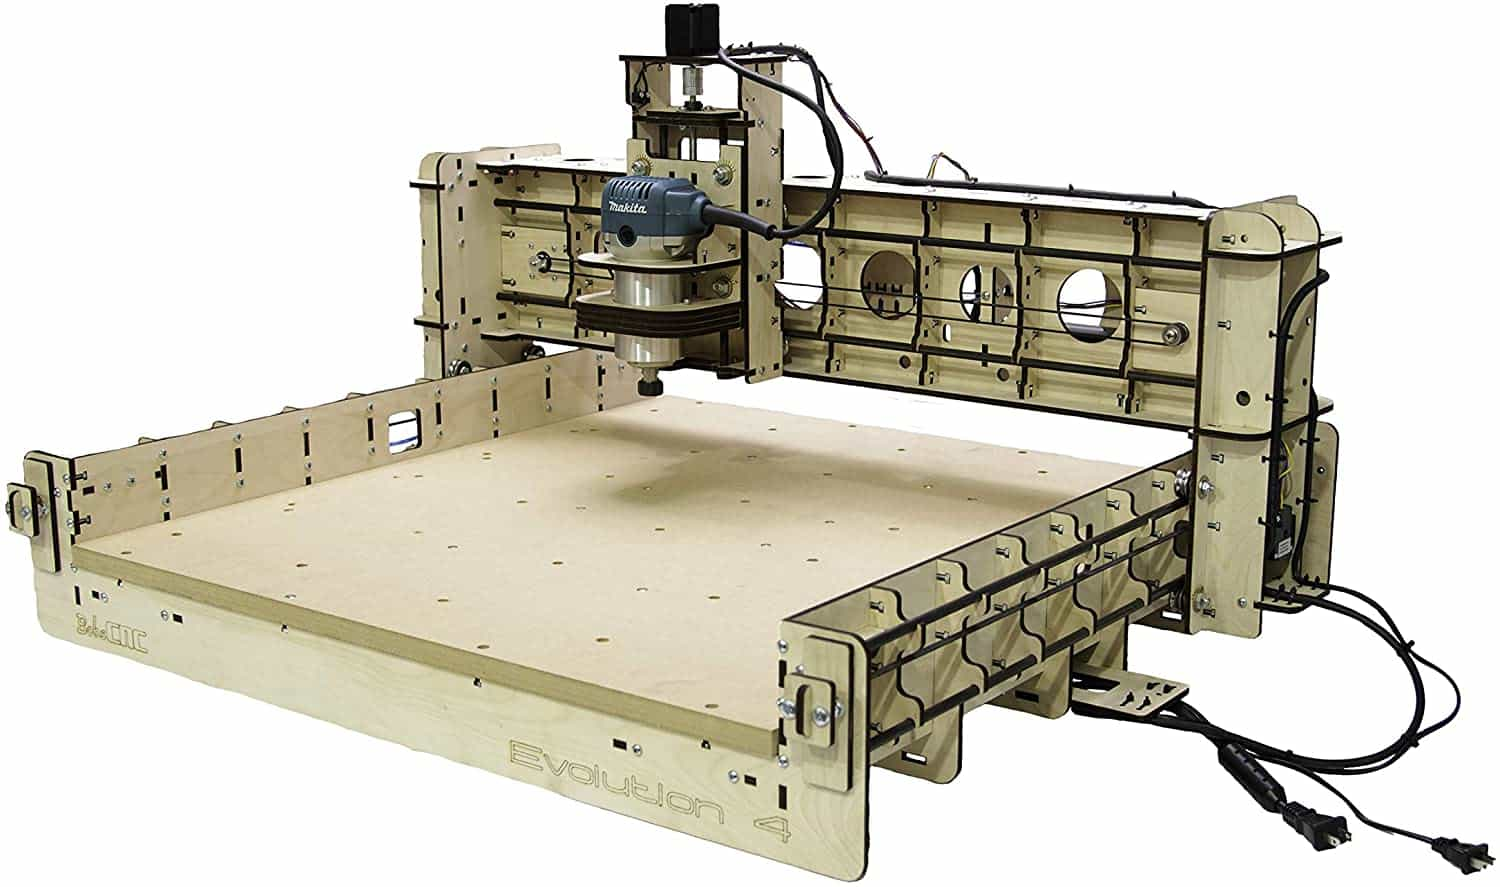 BobsCNC Evolution 4 CNC Router Kit With Router